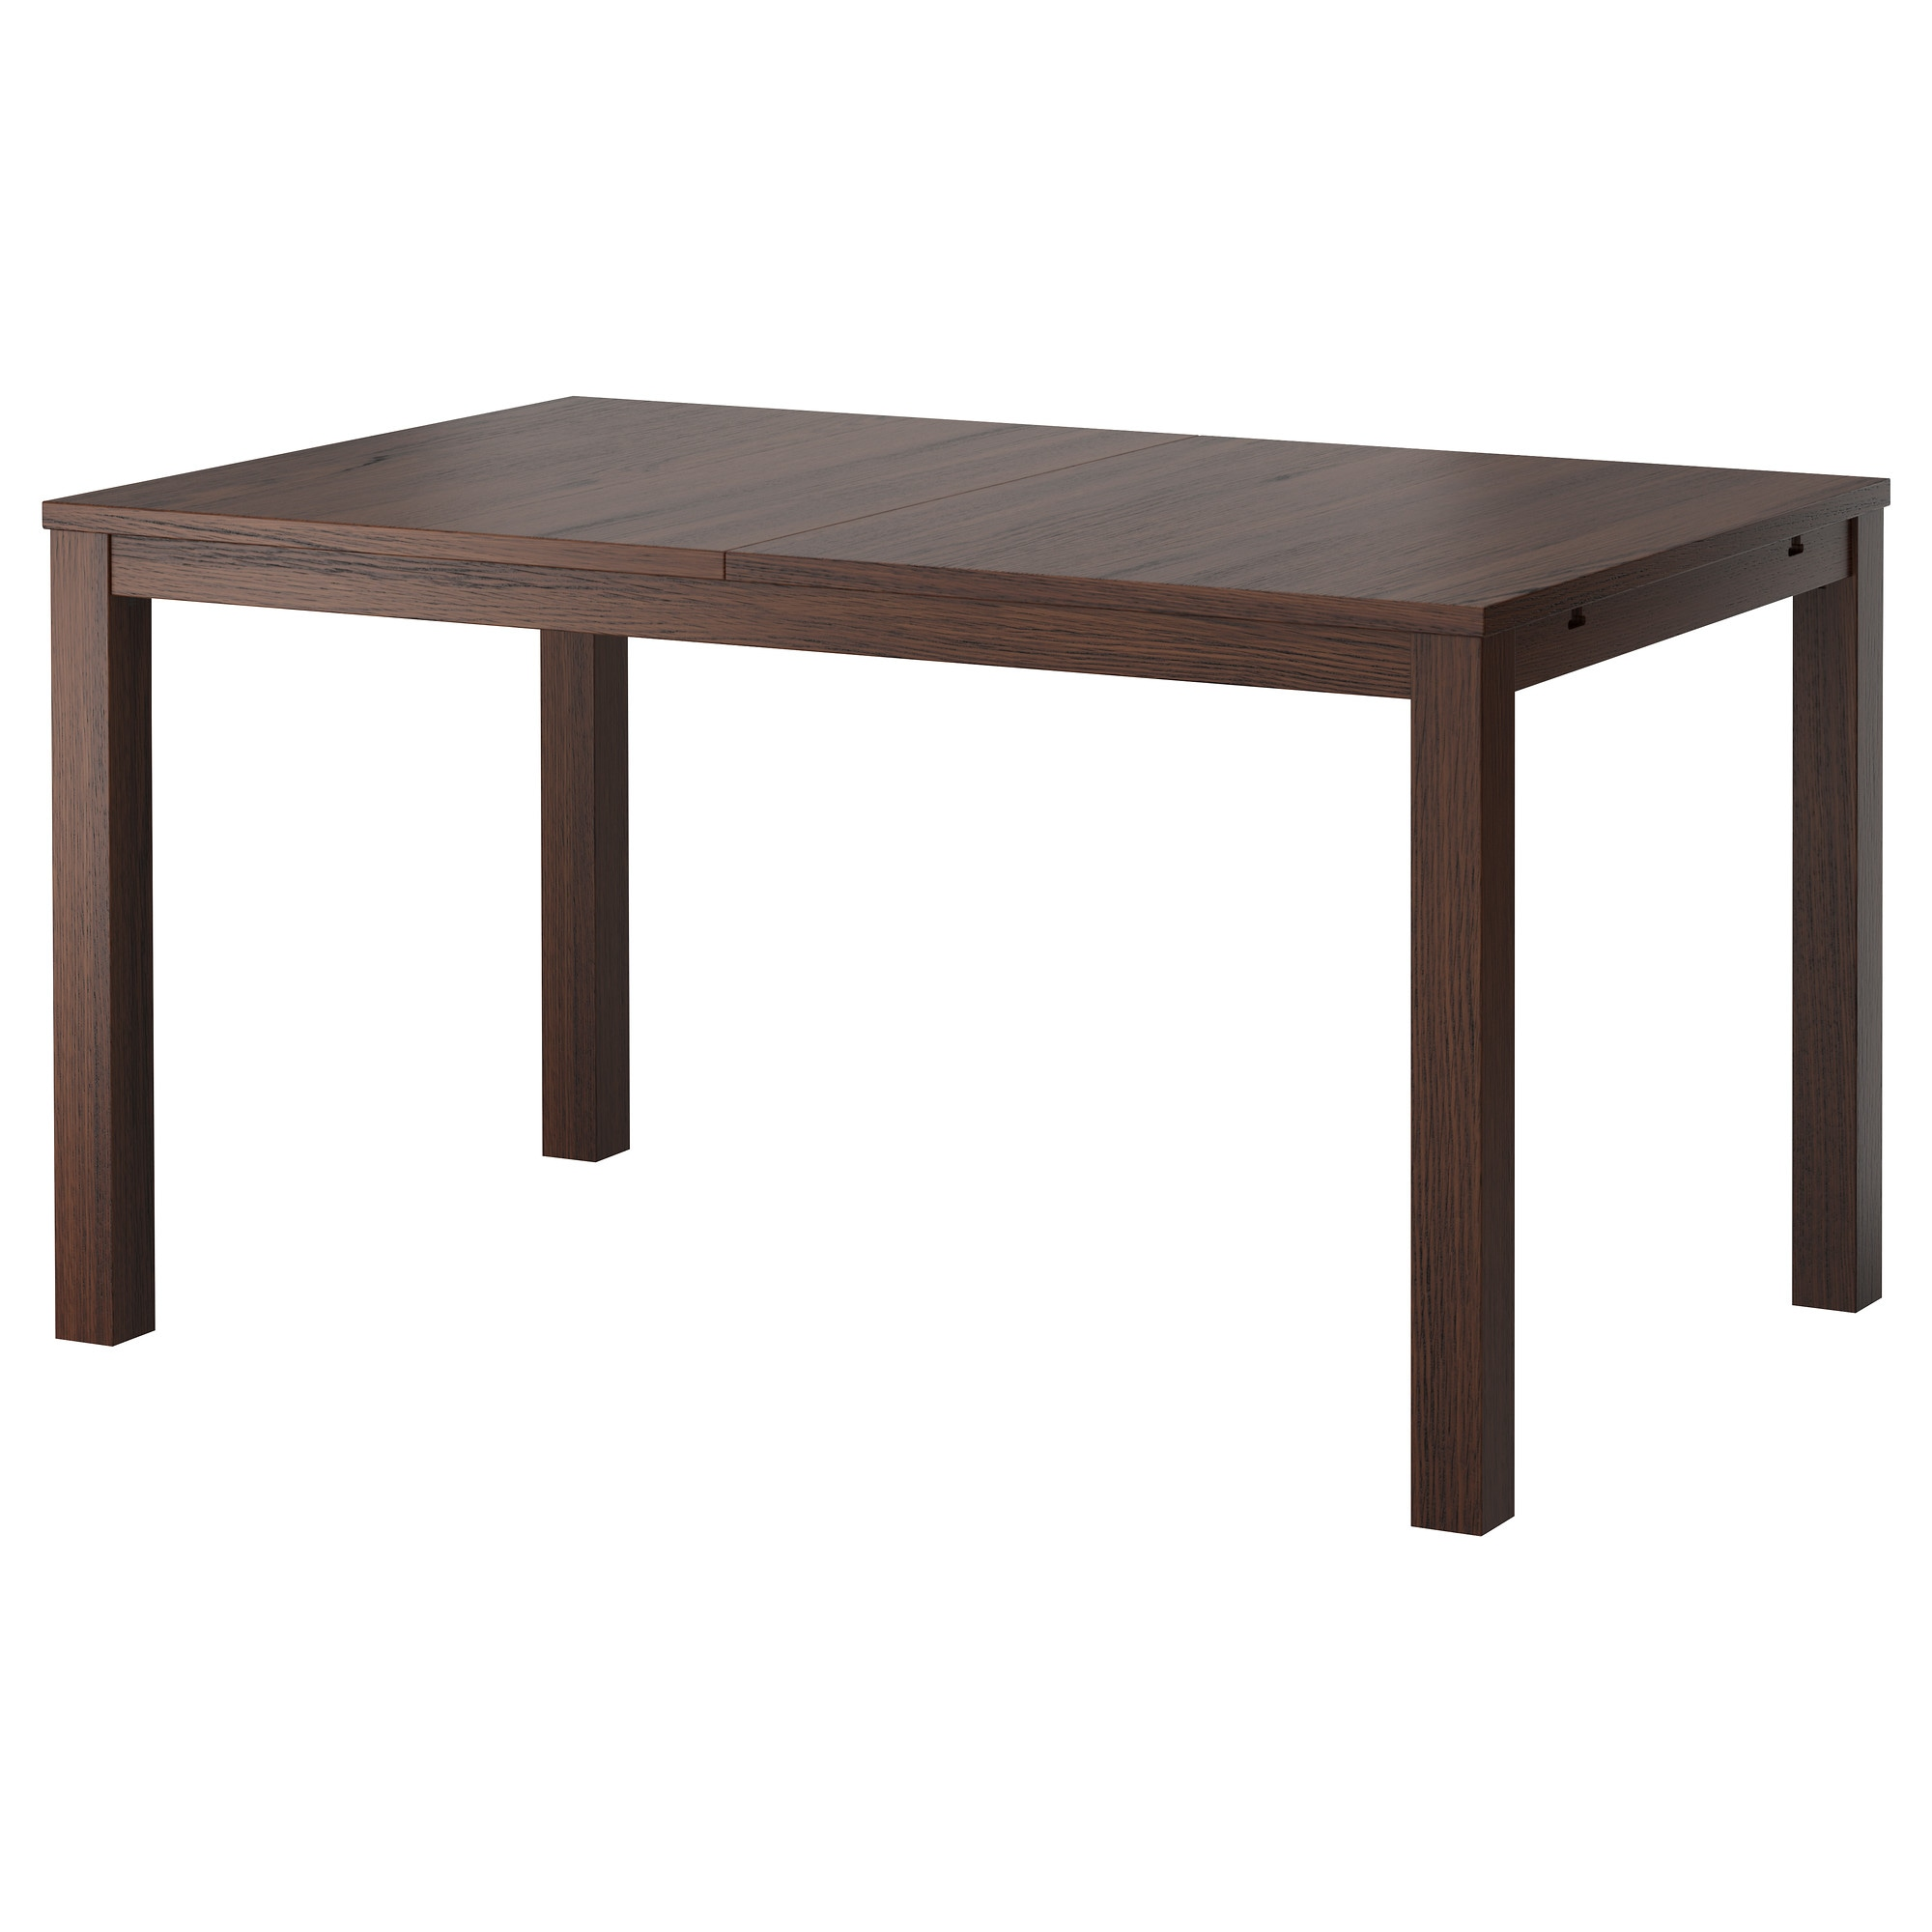 bjursta extendable table - brown-black - ikea